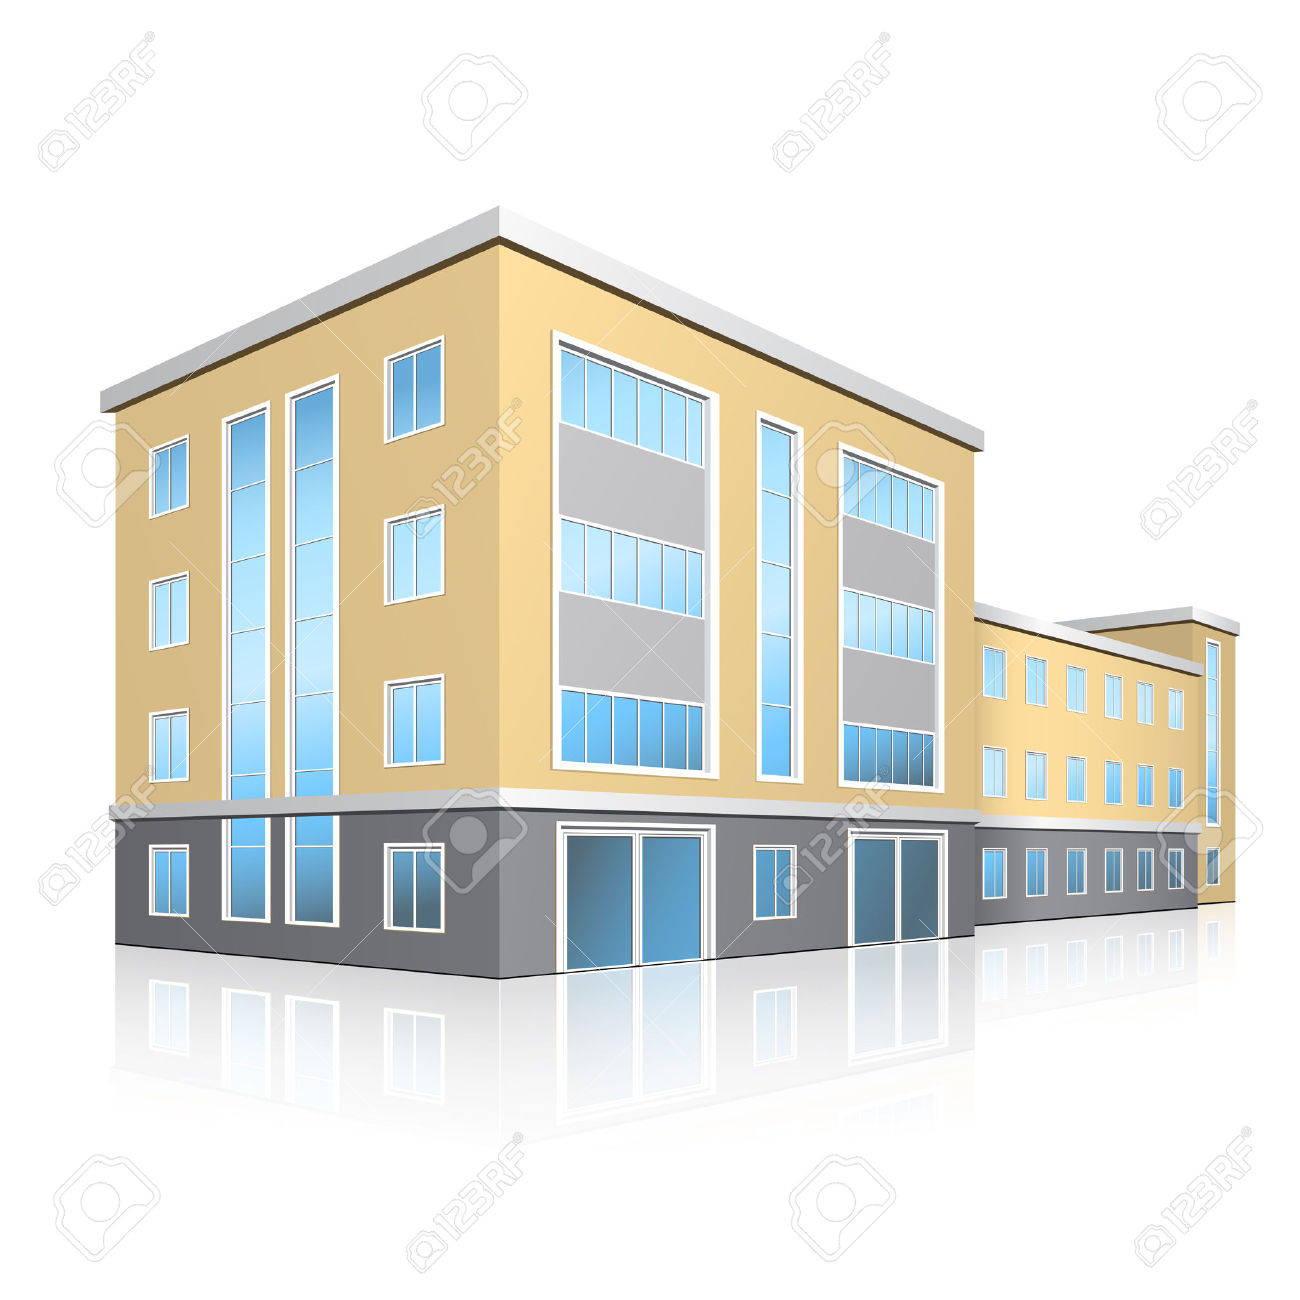 Office Building With Entrance And Reflection On White Background.